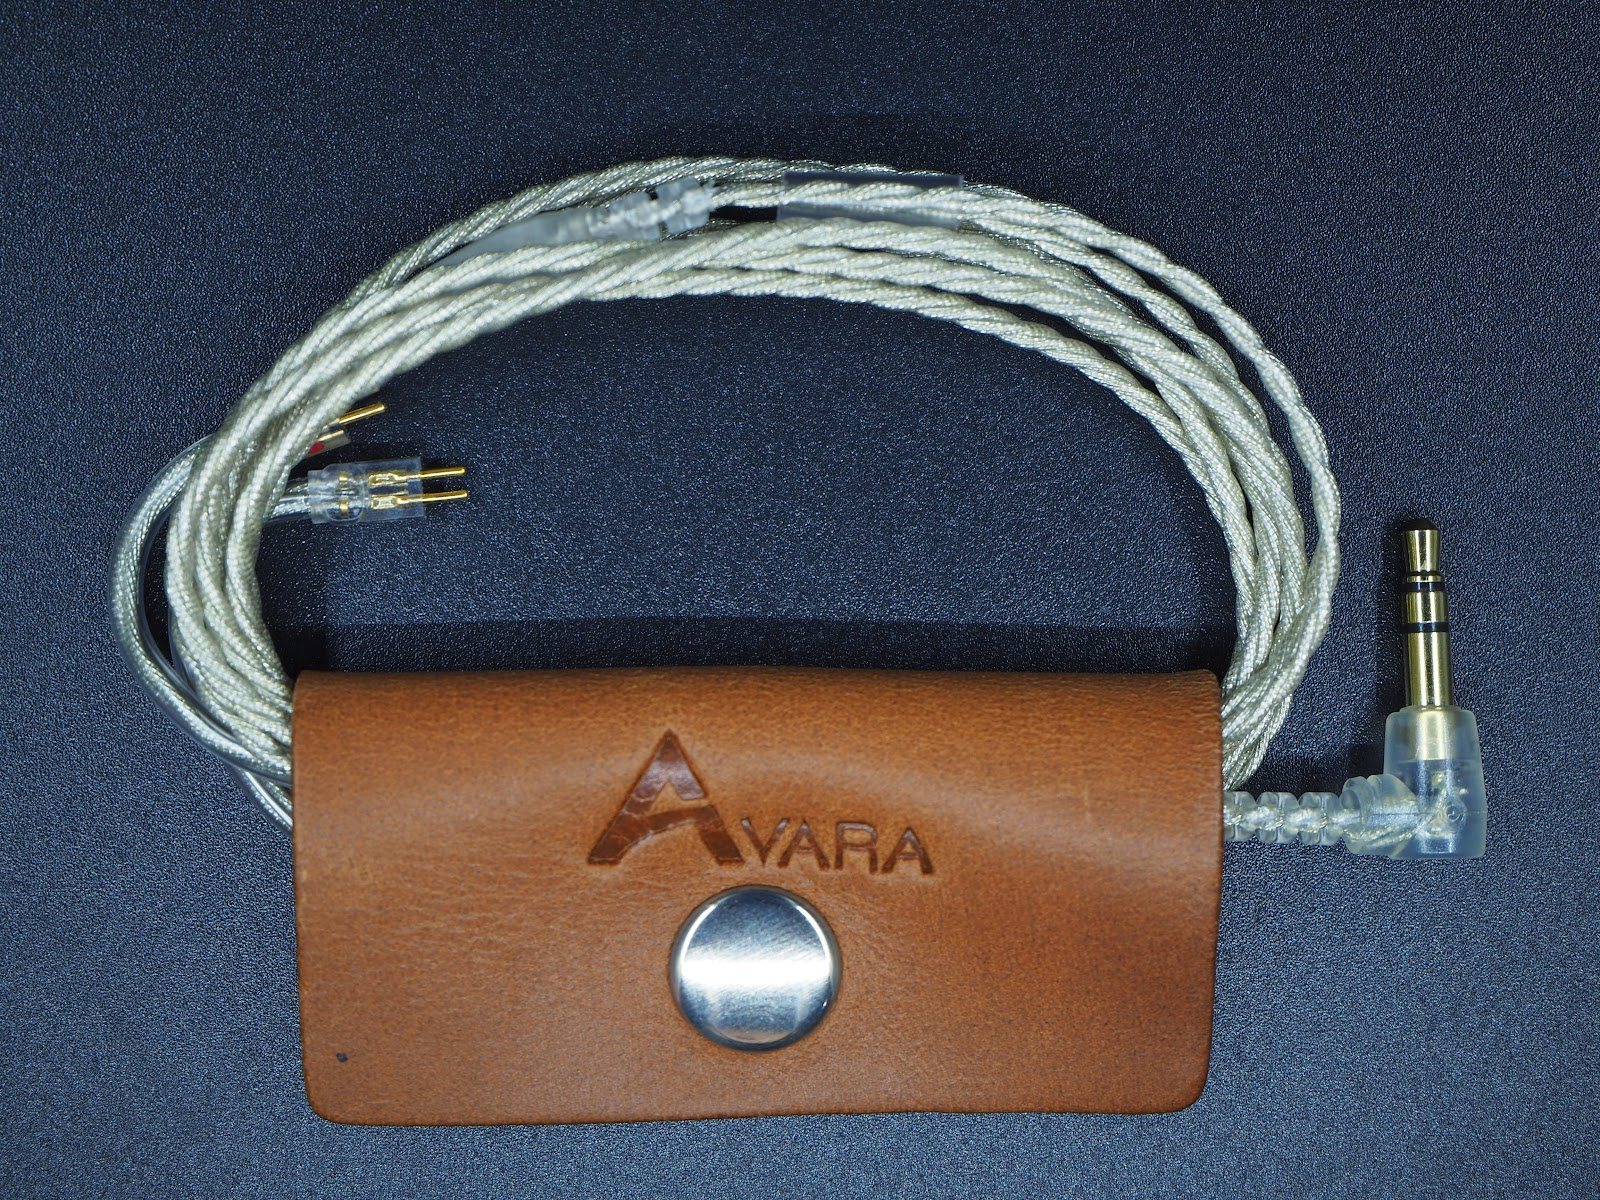 Cable with leather cable management clip